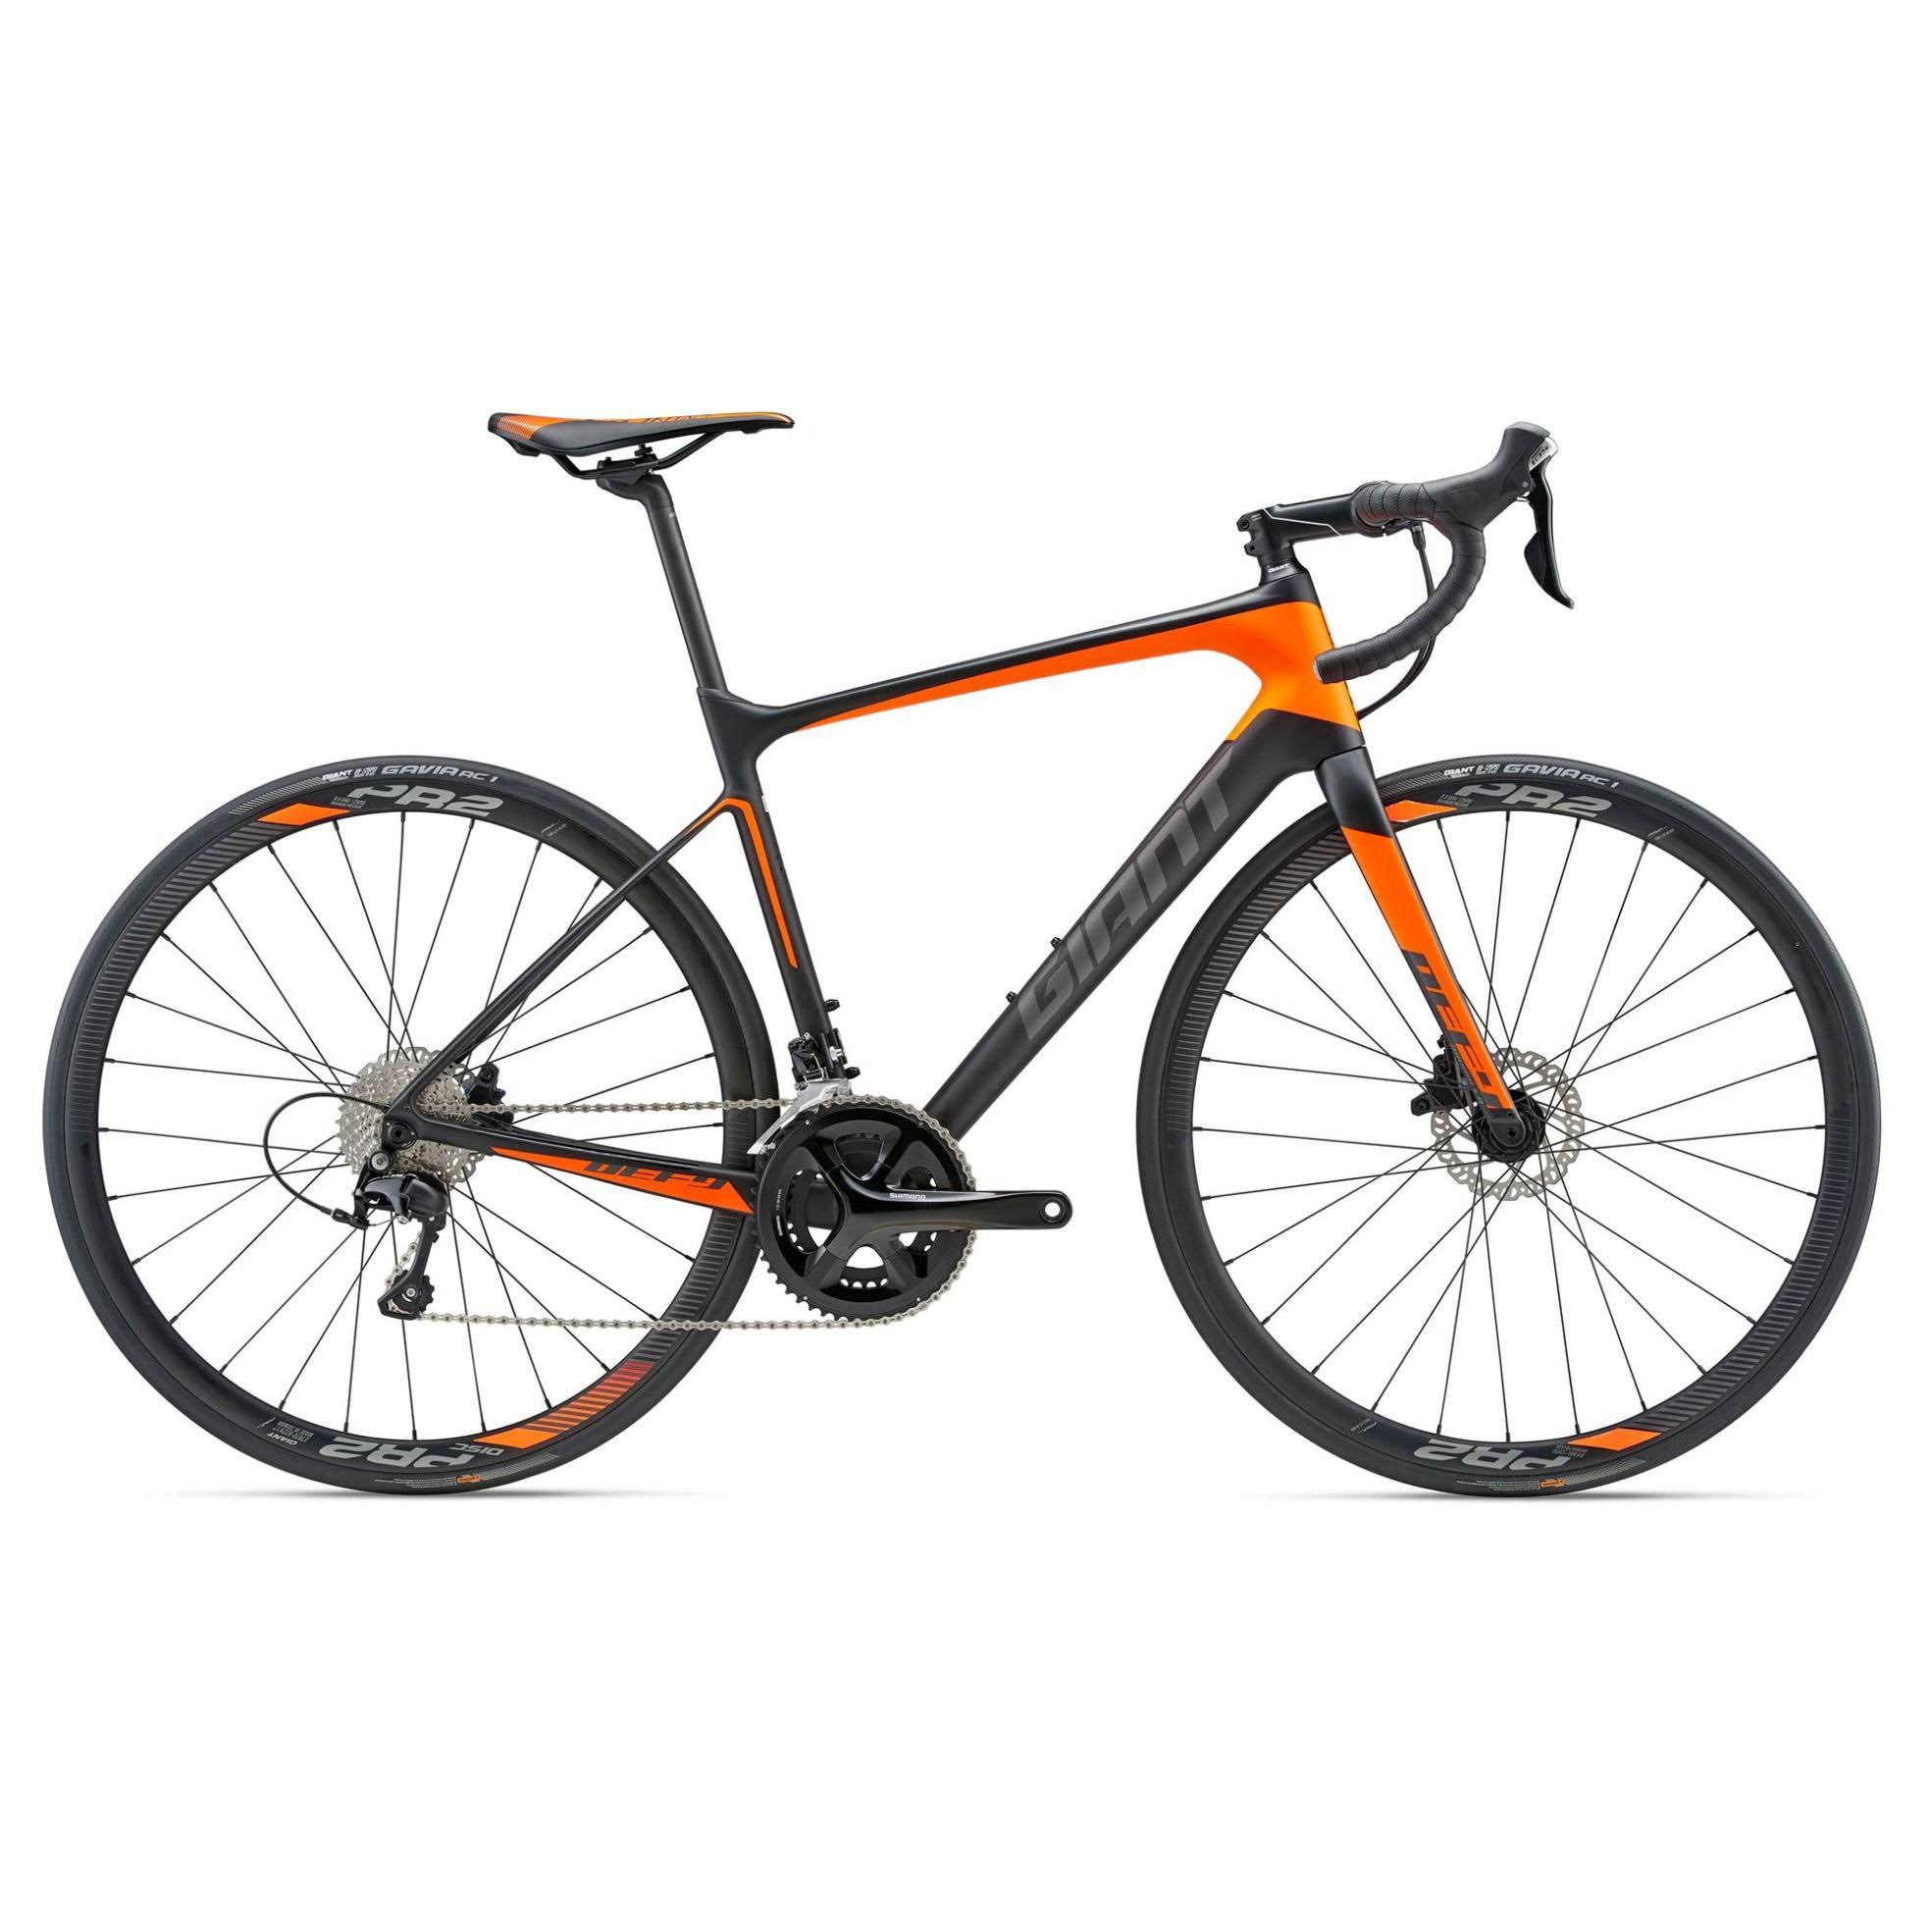 Defy Advanced 80002224 Carbon Bicycle - Orange